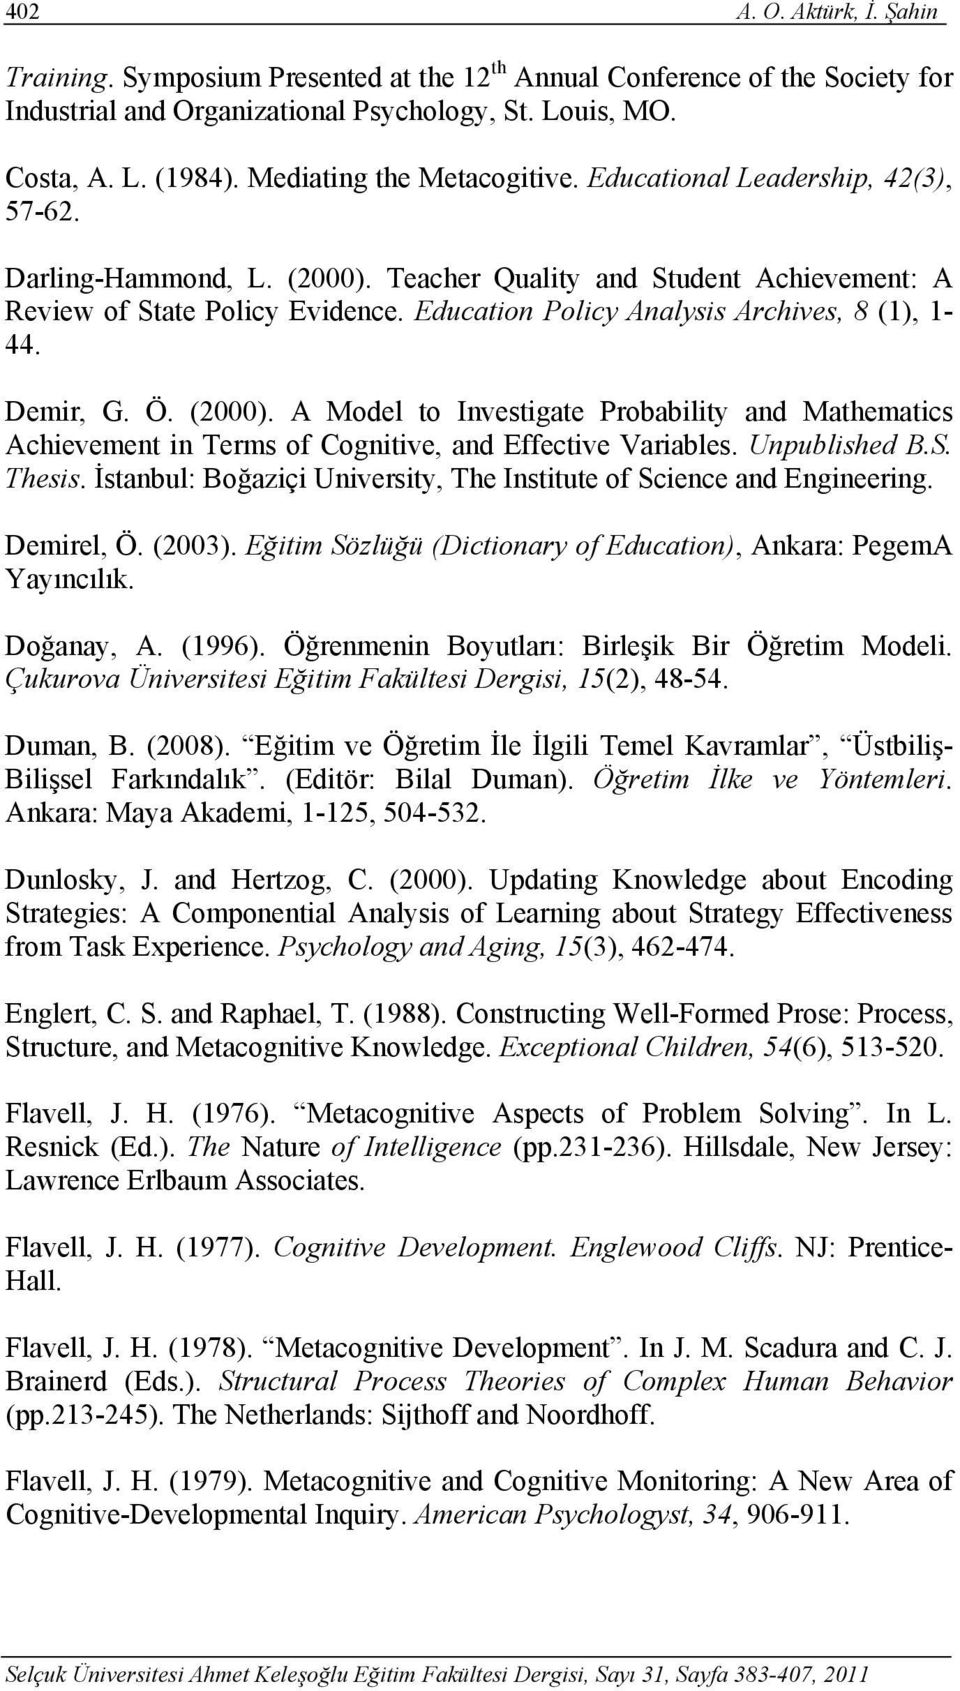 Education Policy Analysis Archives, 8 (1), 1-44. Demir, G. Ö. (2000). A Model to Investigate Probability and Mathematics Achievement in Terms of Cognitive, and Effective Variables. Unpublished B.S.